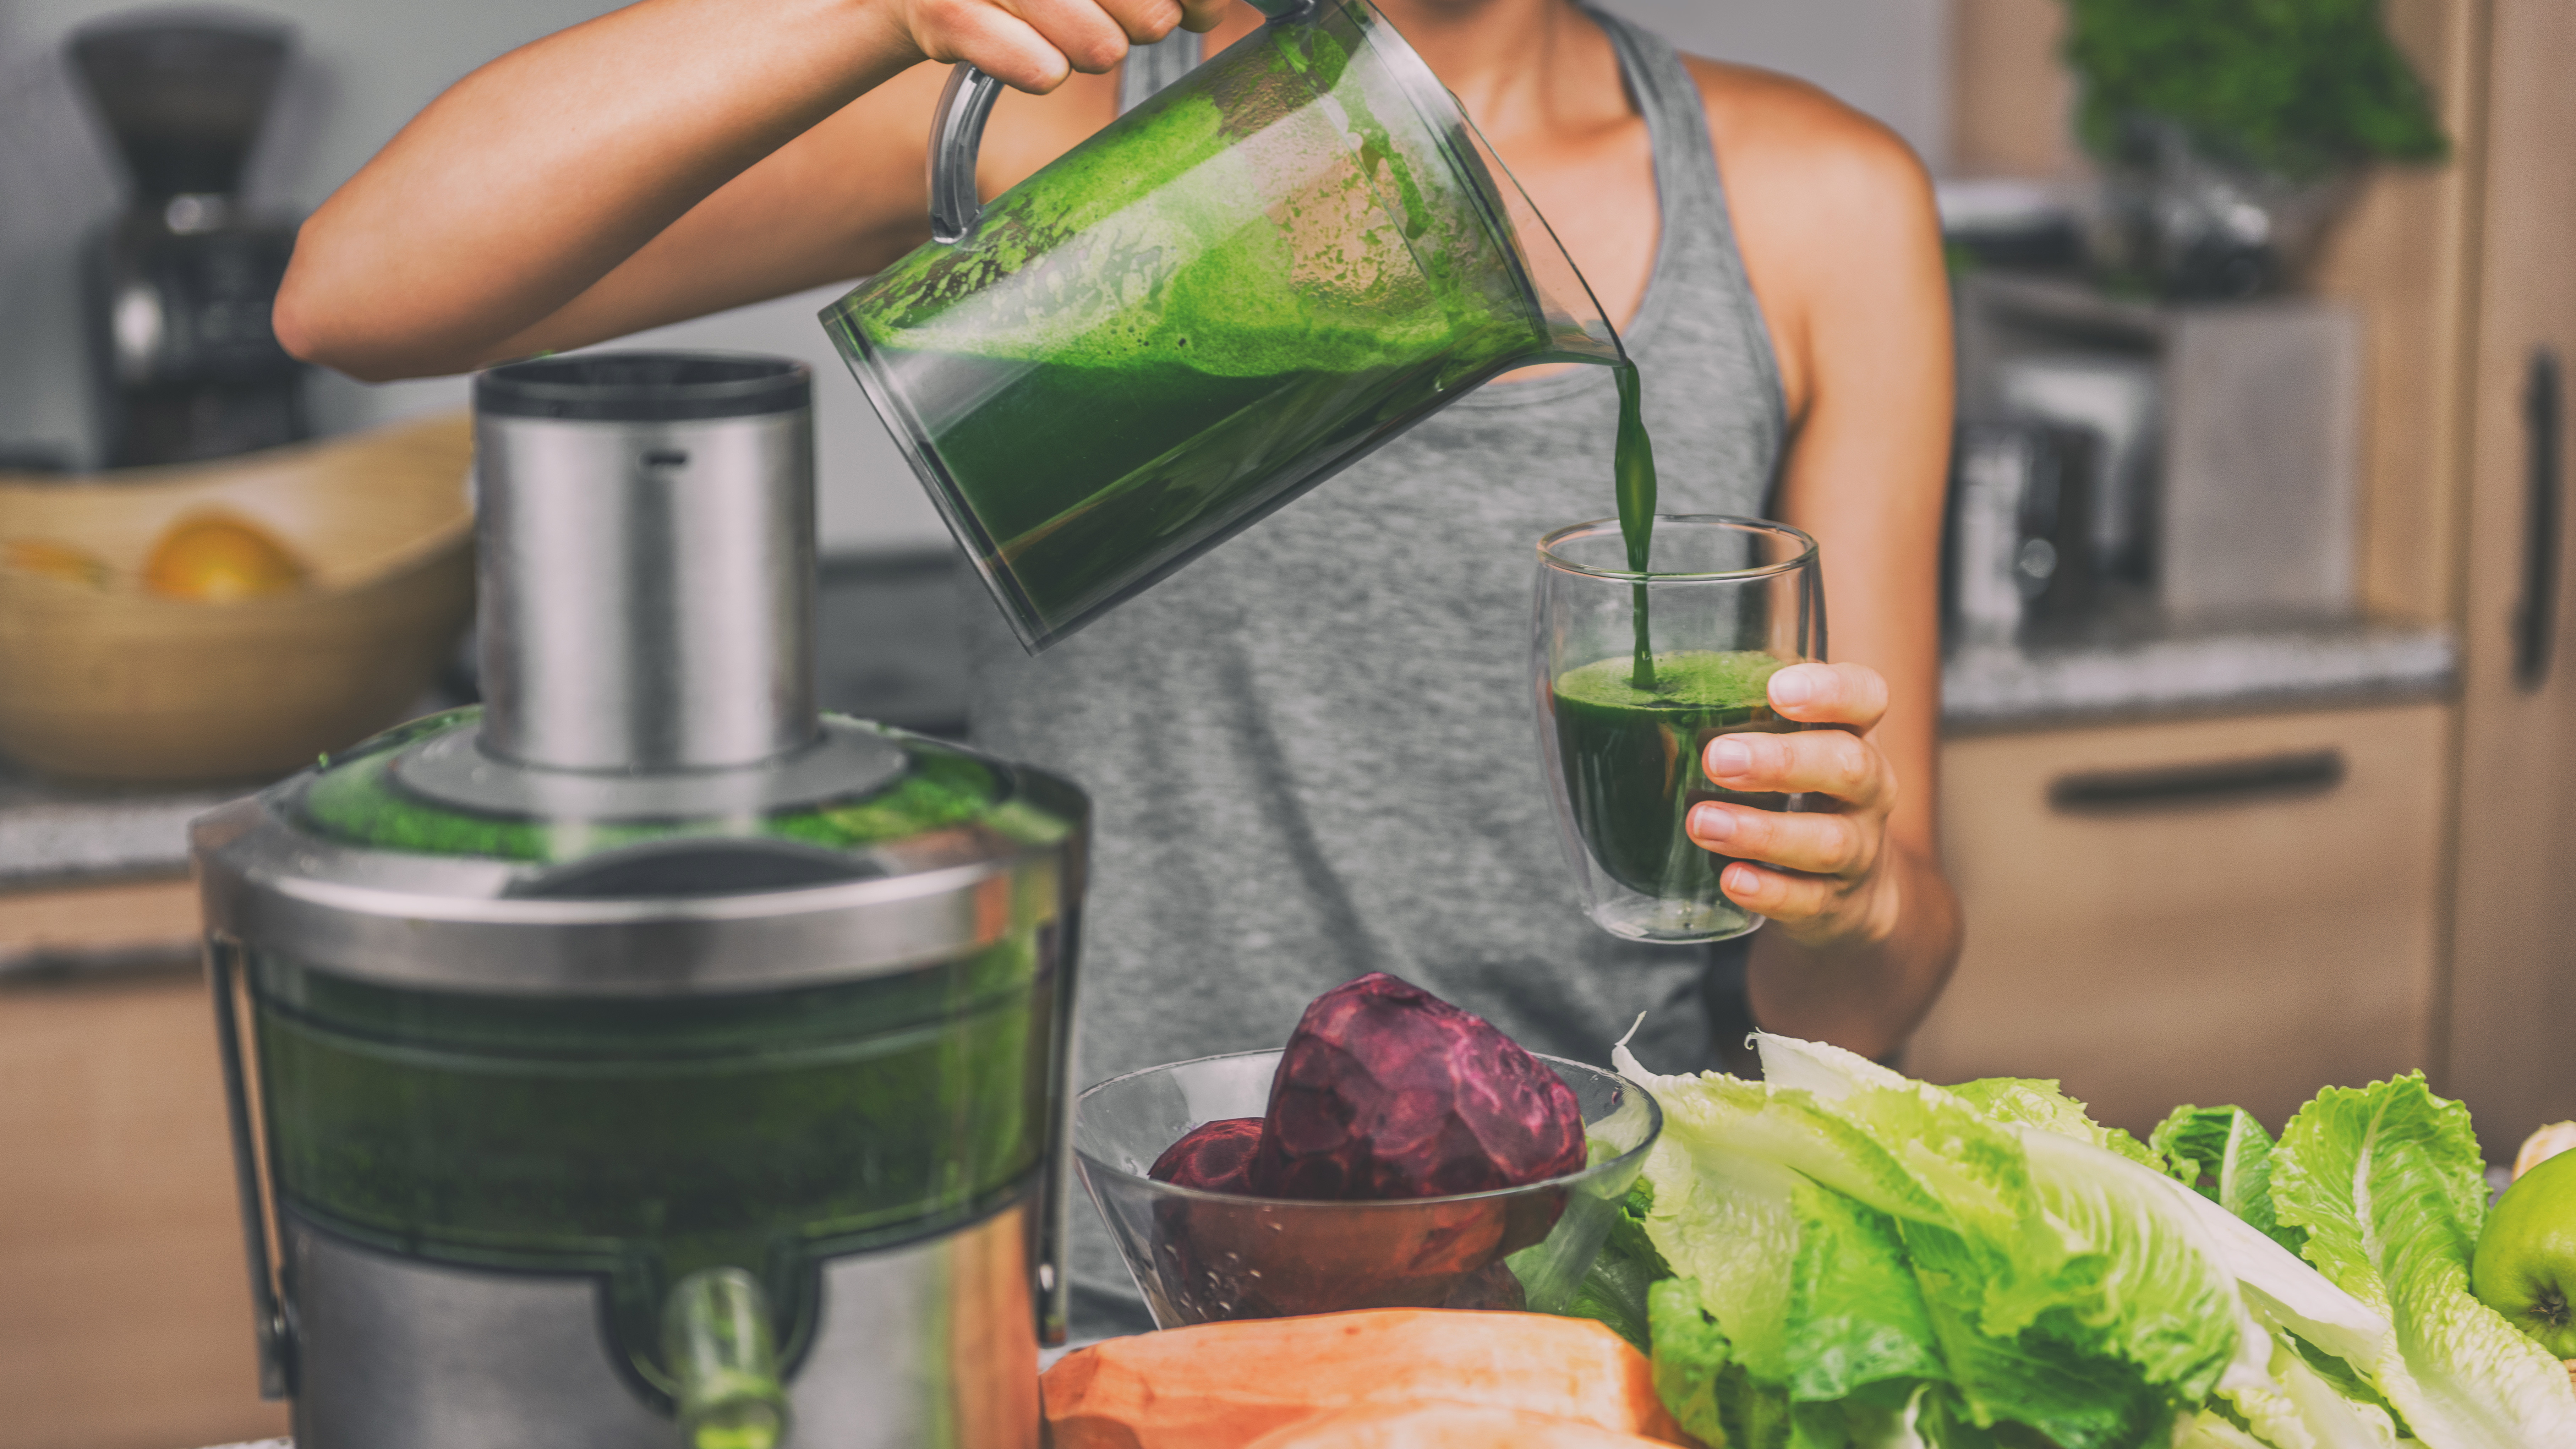 A woman making a healthy green juice in a juicer surrounded by vegetables